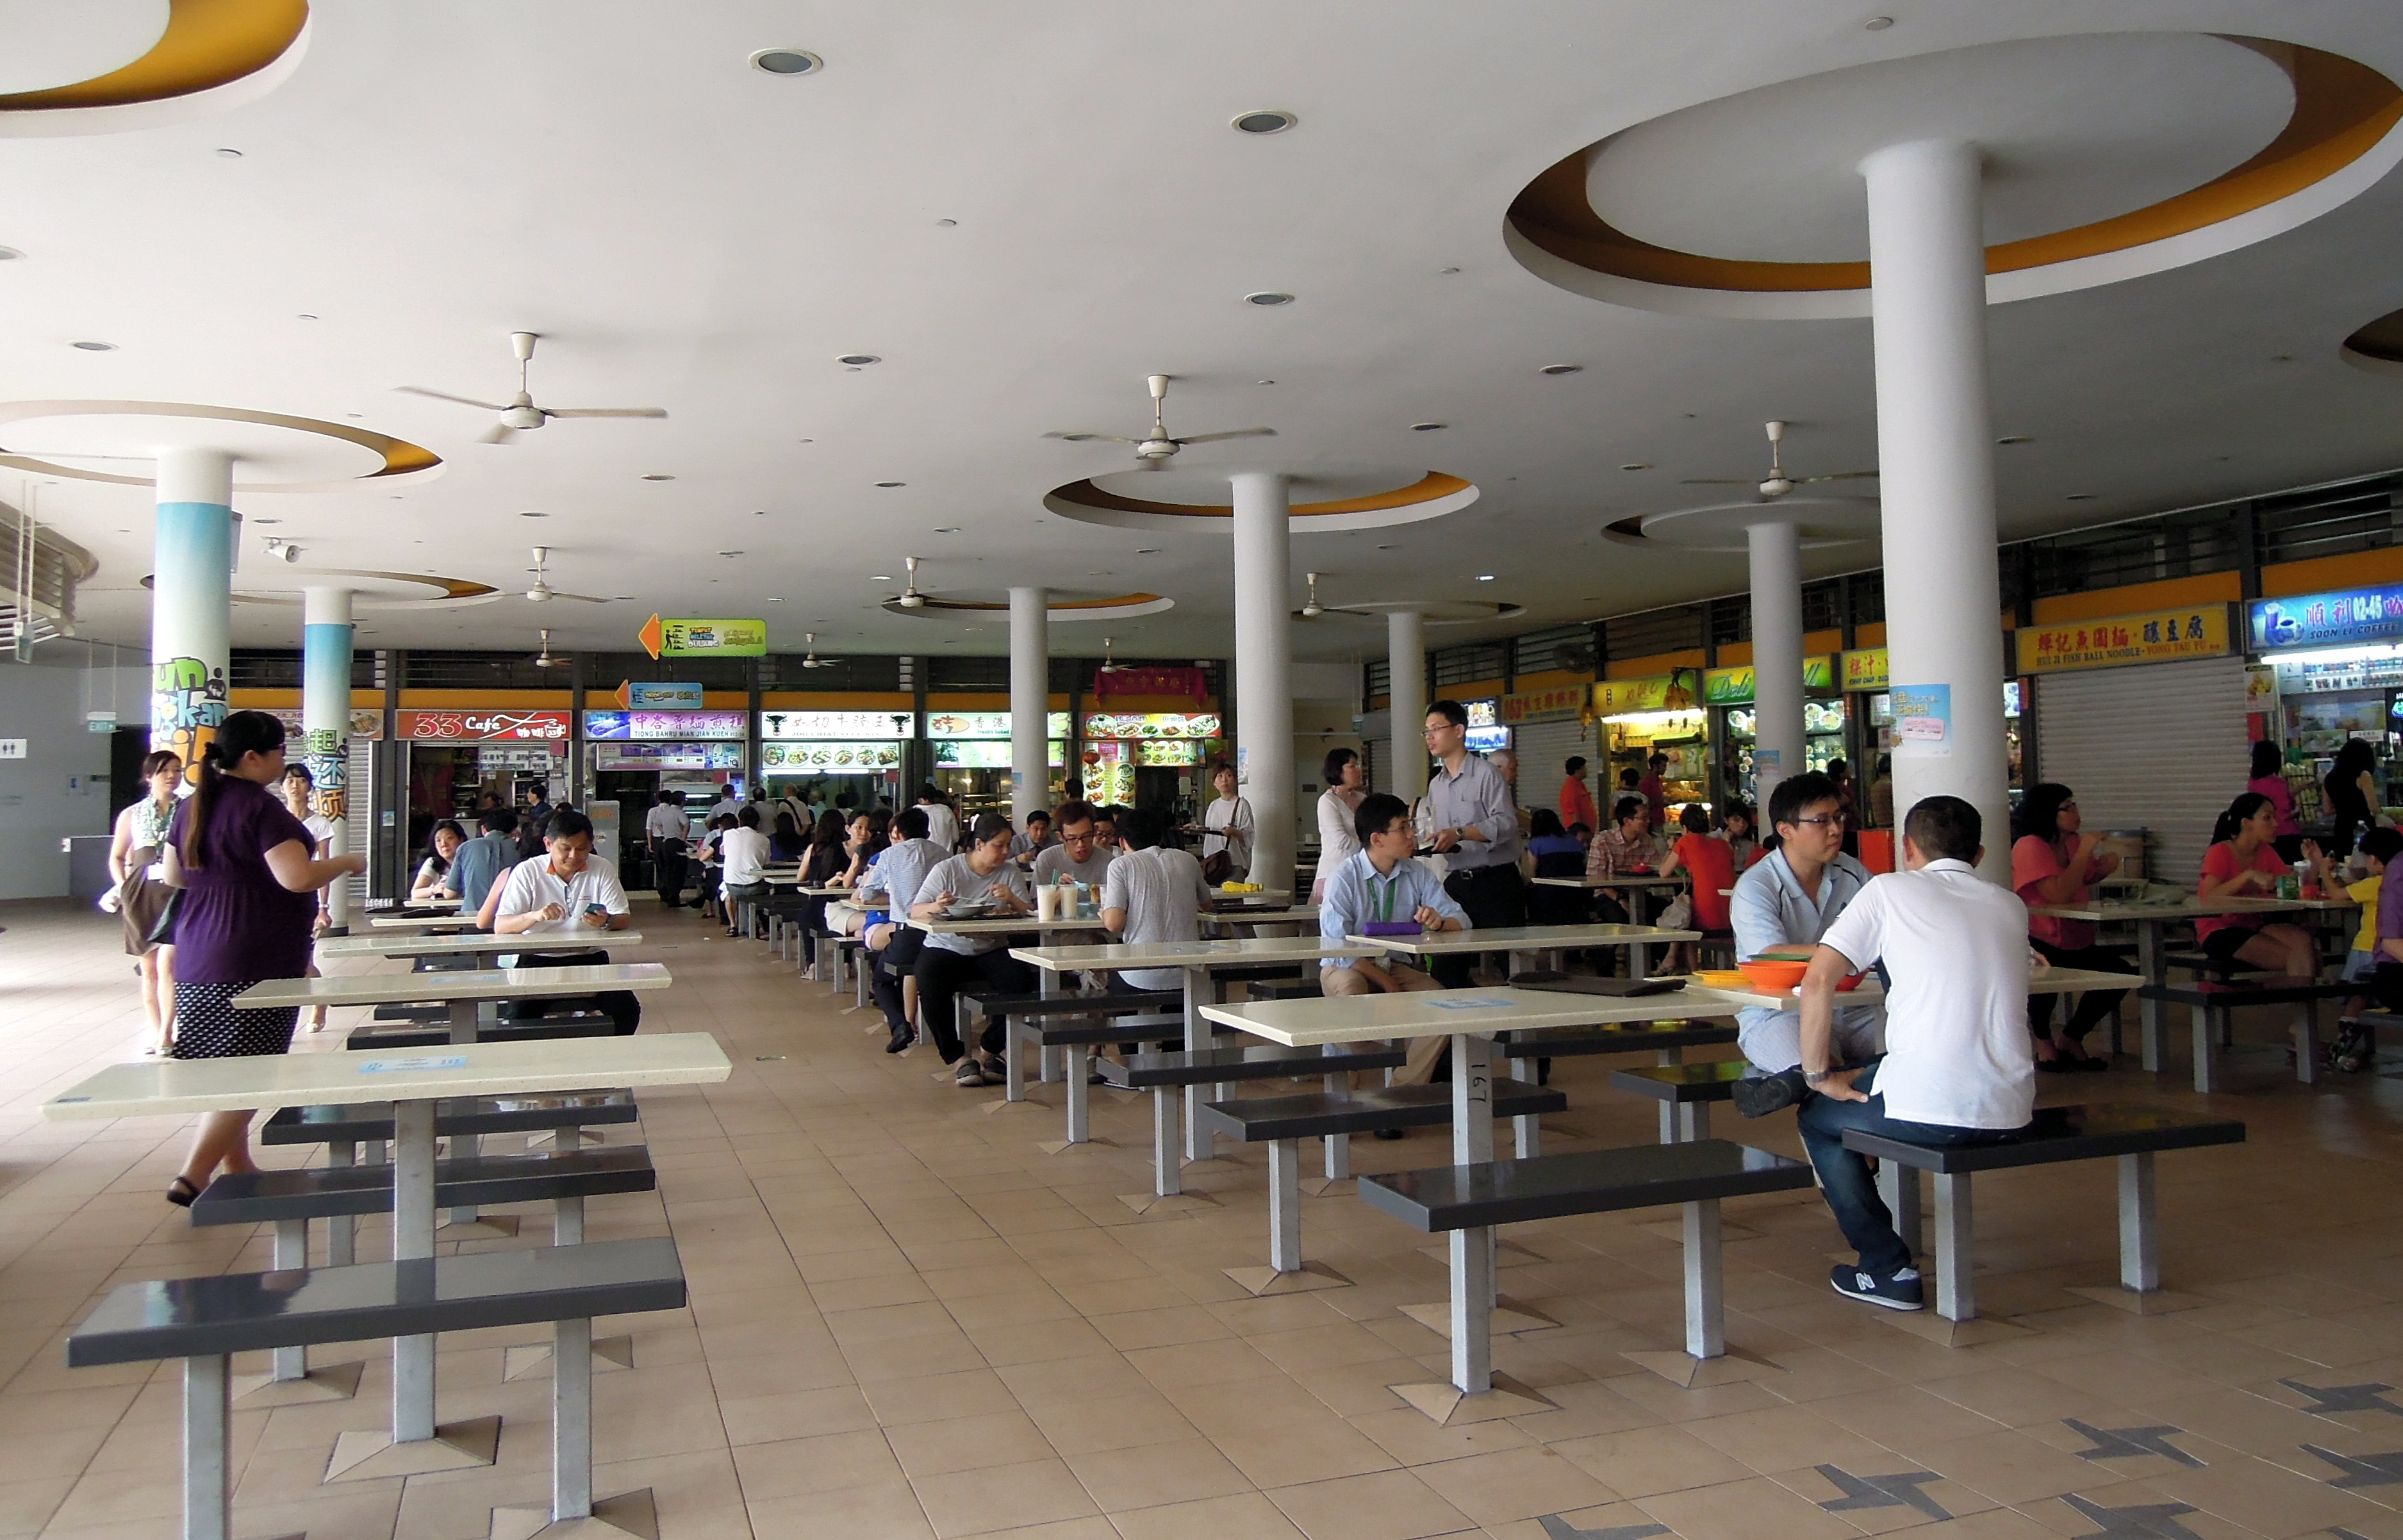 Singapore hawker centres and shopping malls satsumabug for Shopping cuisine